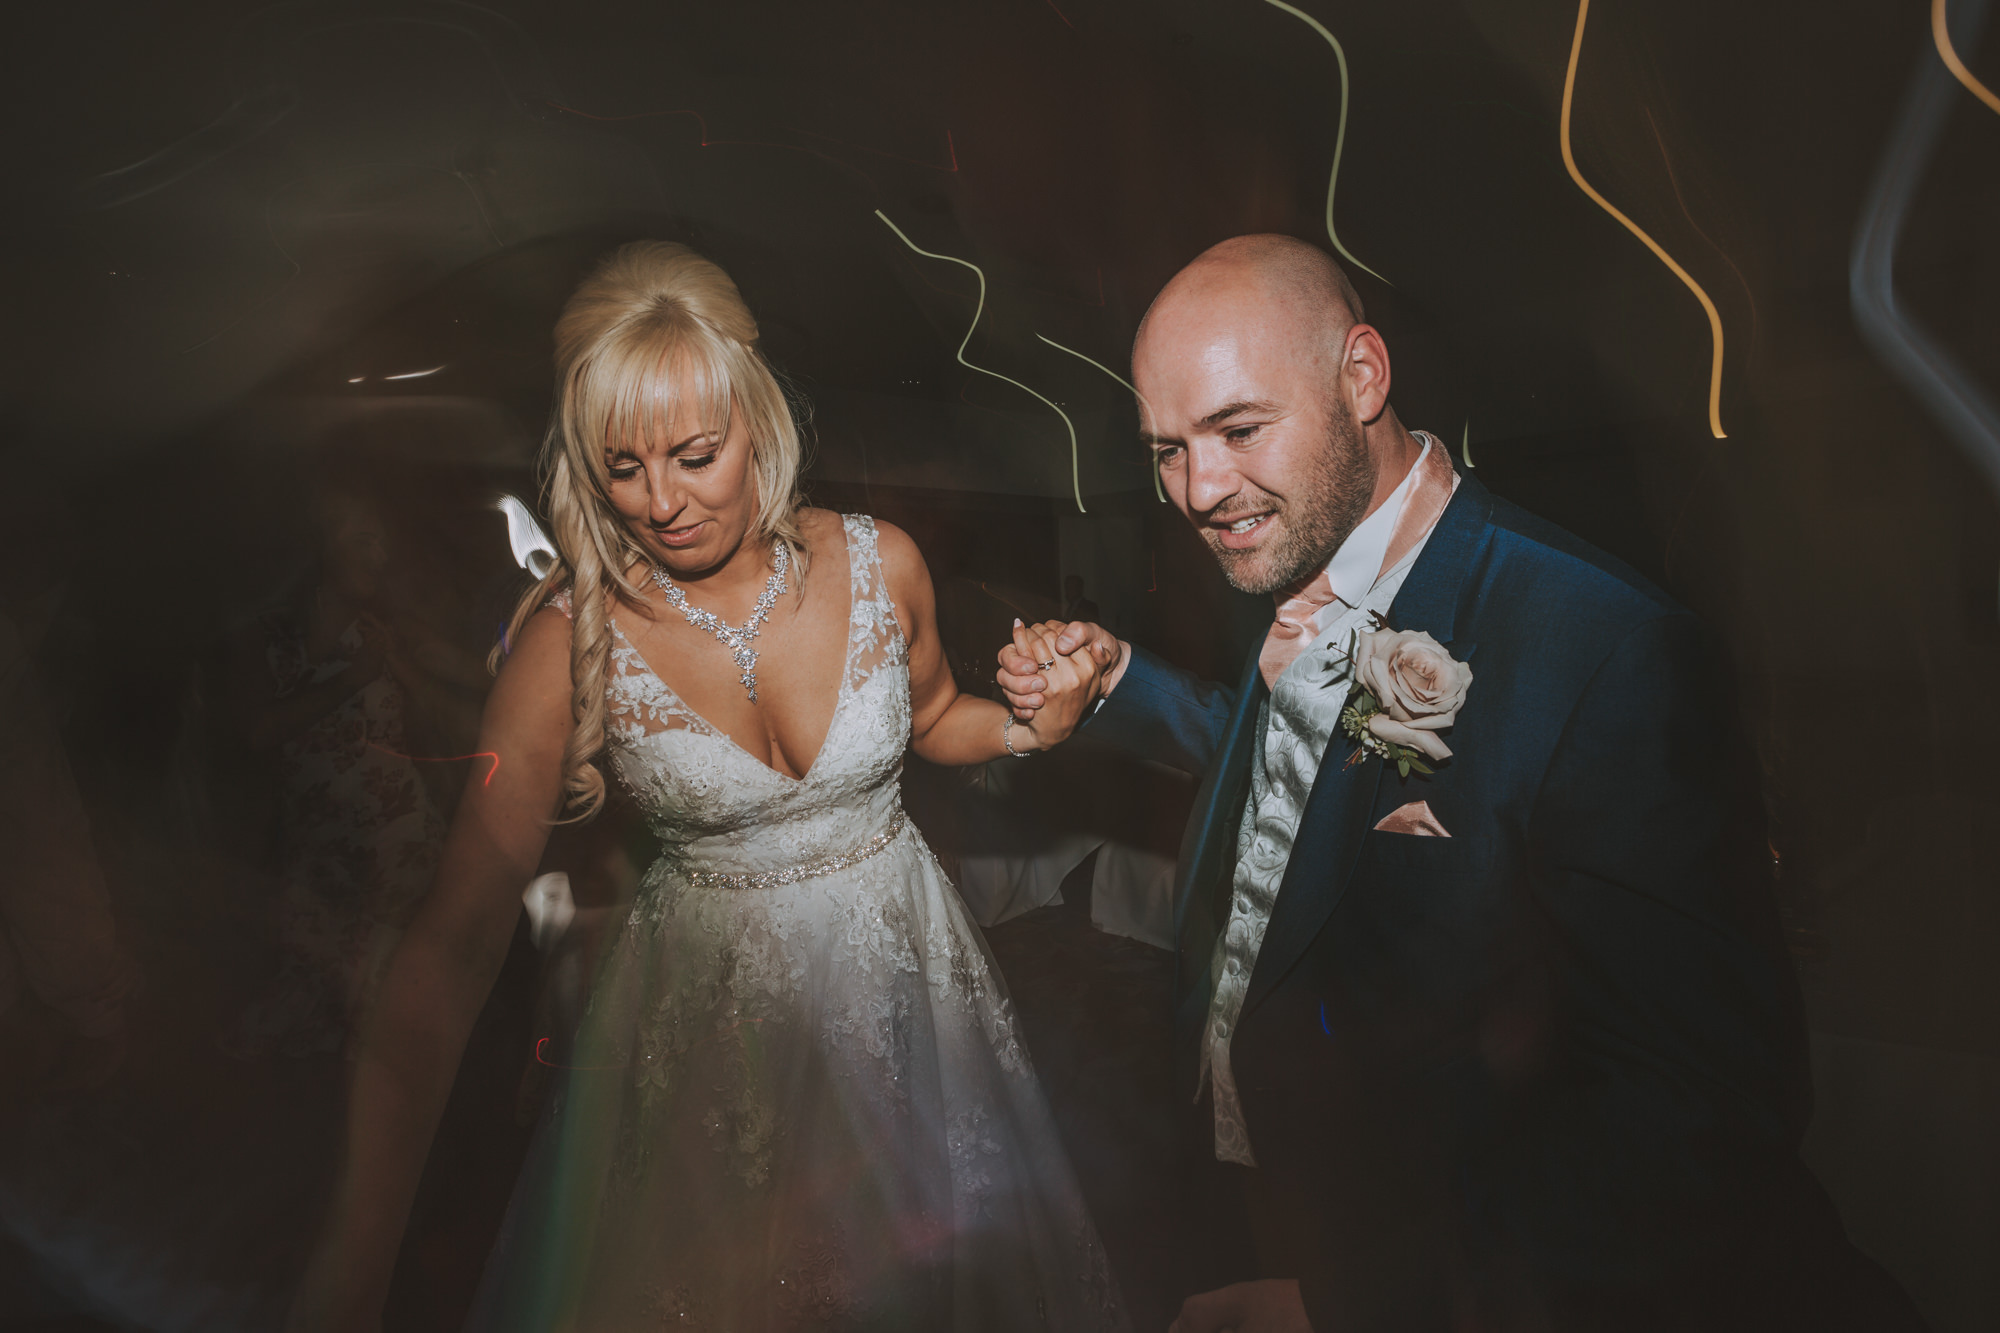 hellaby hall wedding photographers in rotherham, yorkshire-88a.jpg